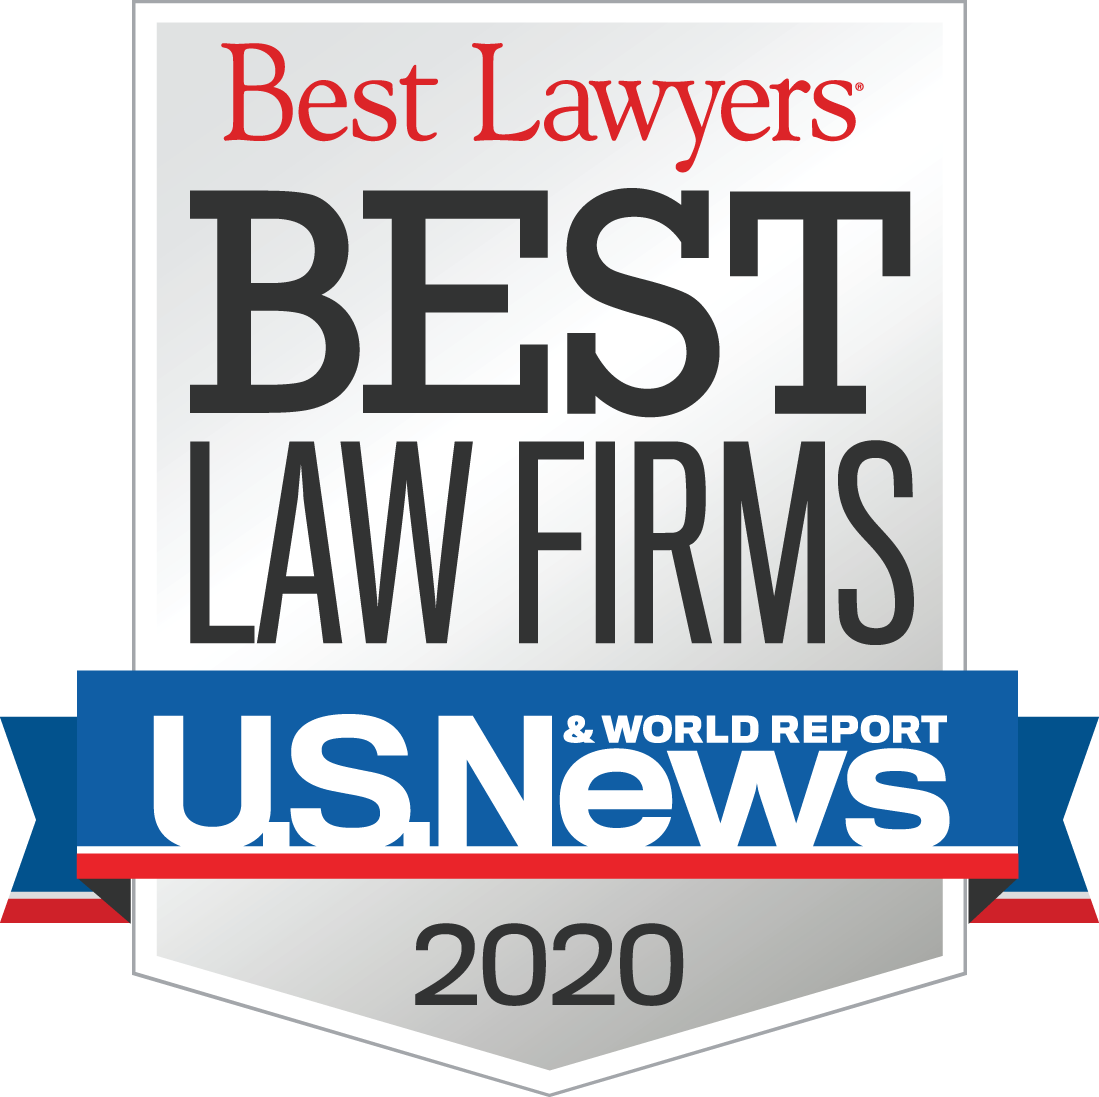 2020-best-law-firms-badge.png